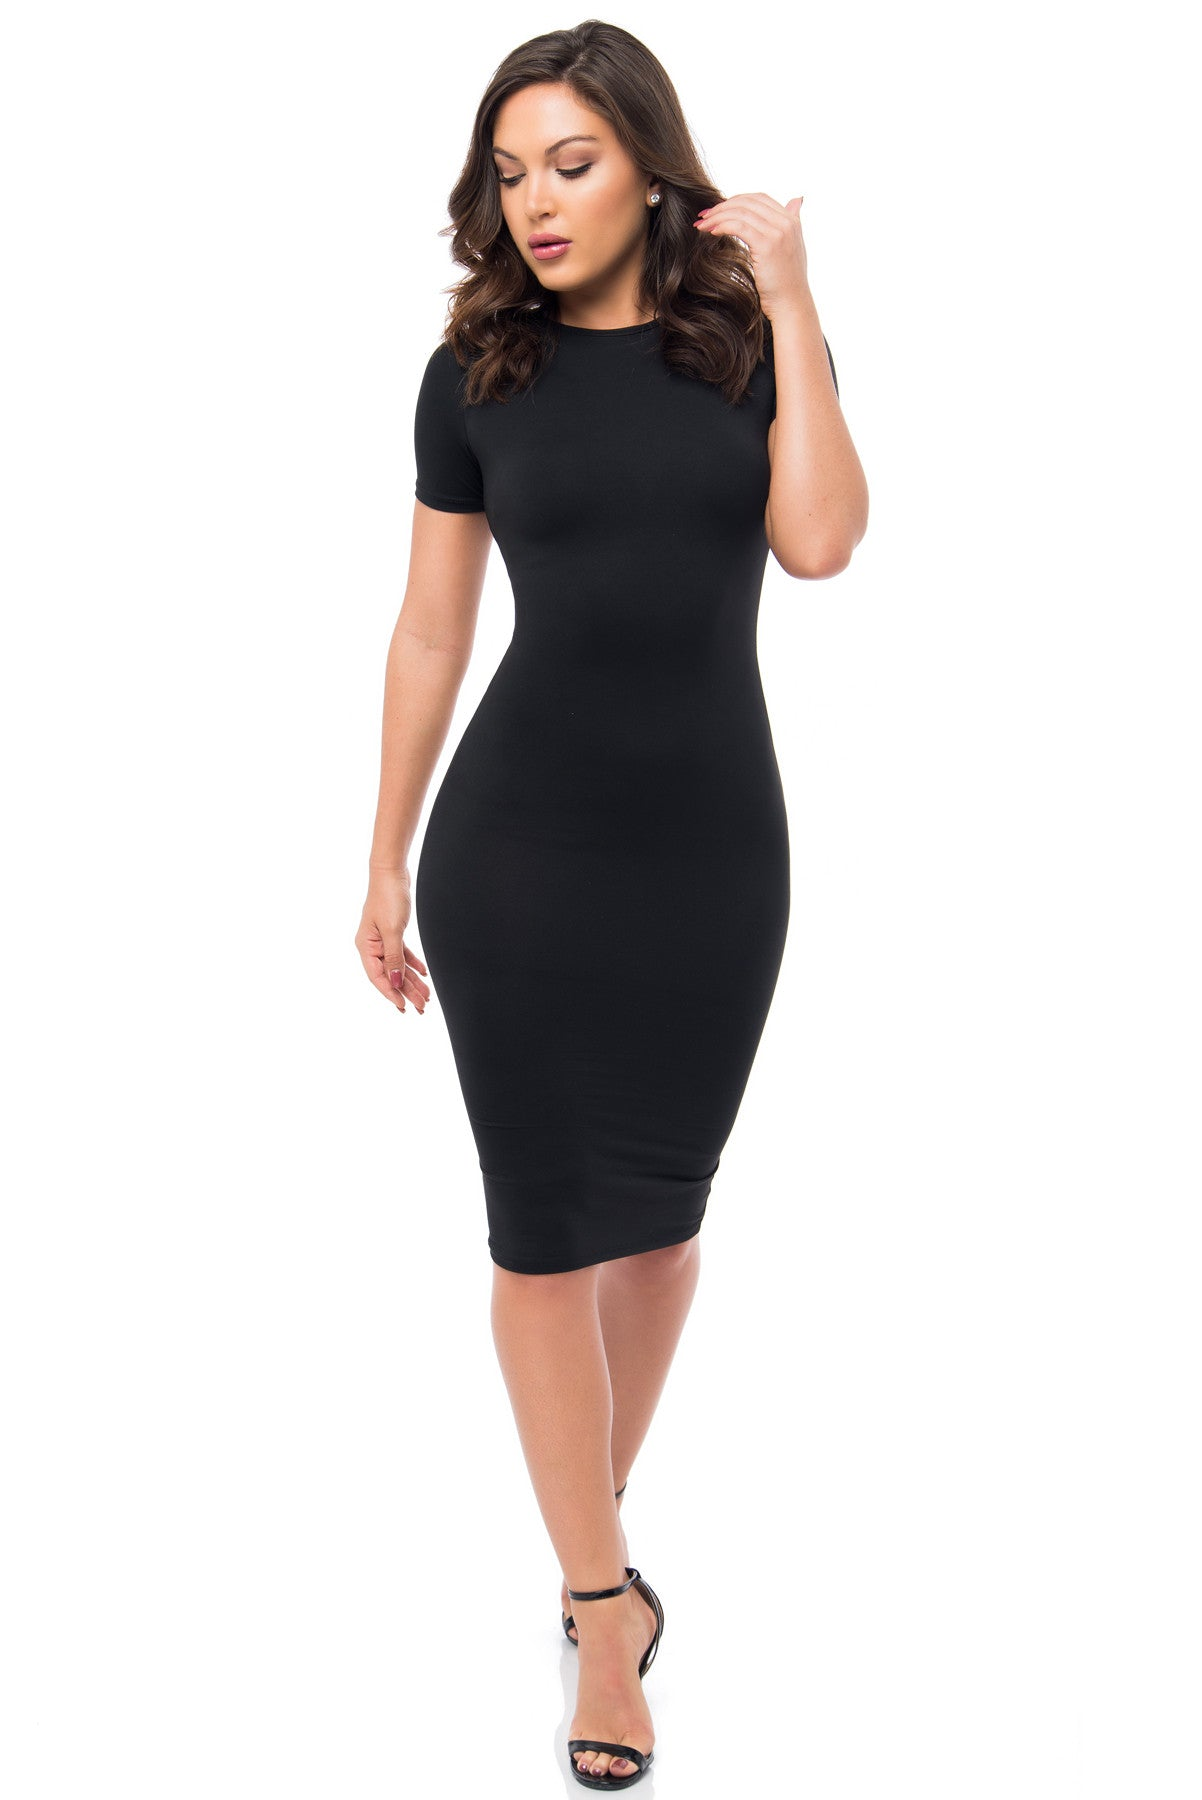 You Belong To Me Black Dress - Fashion Effect Store  - 1